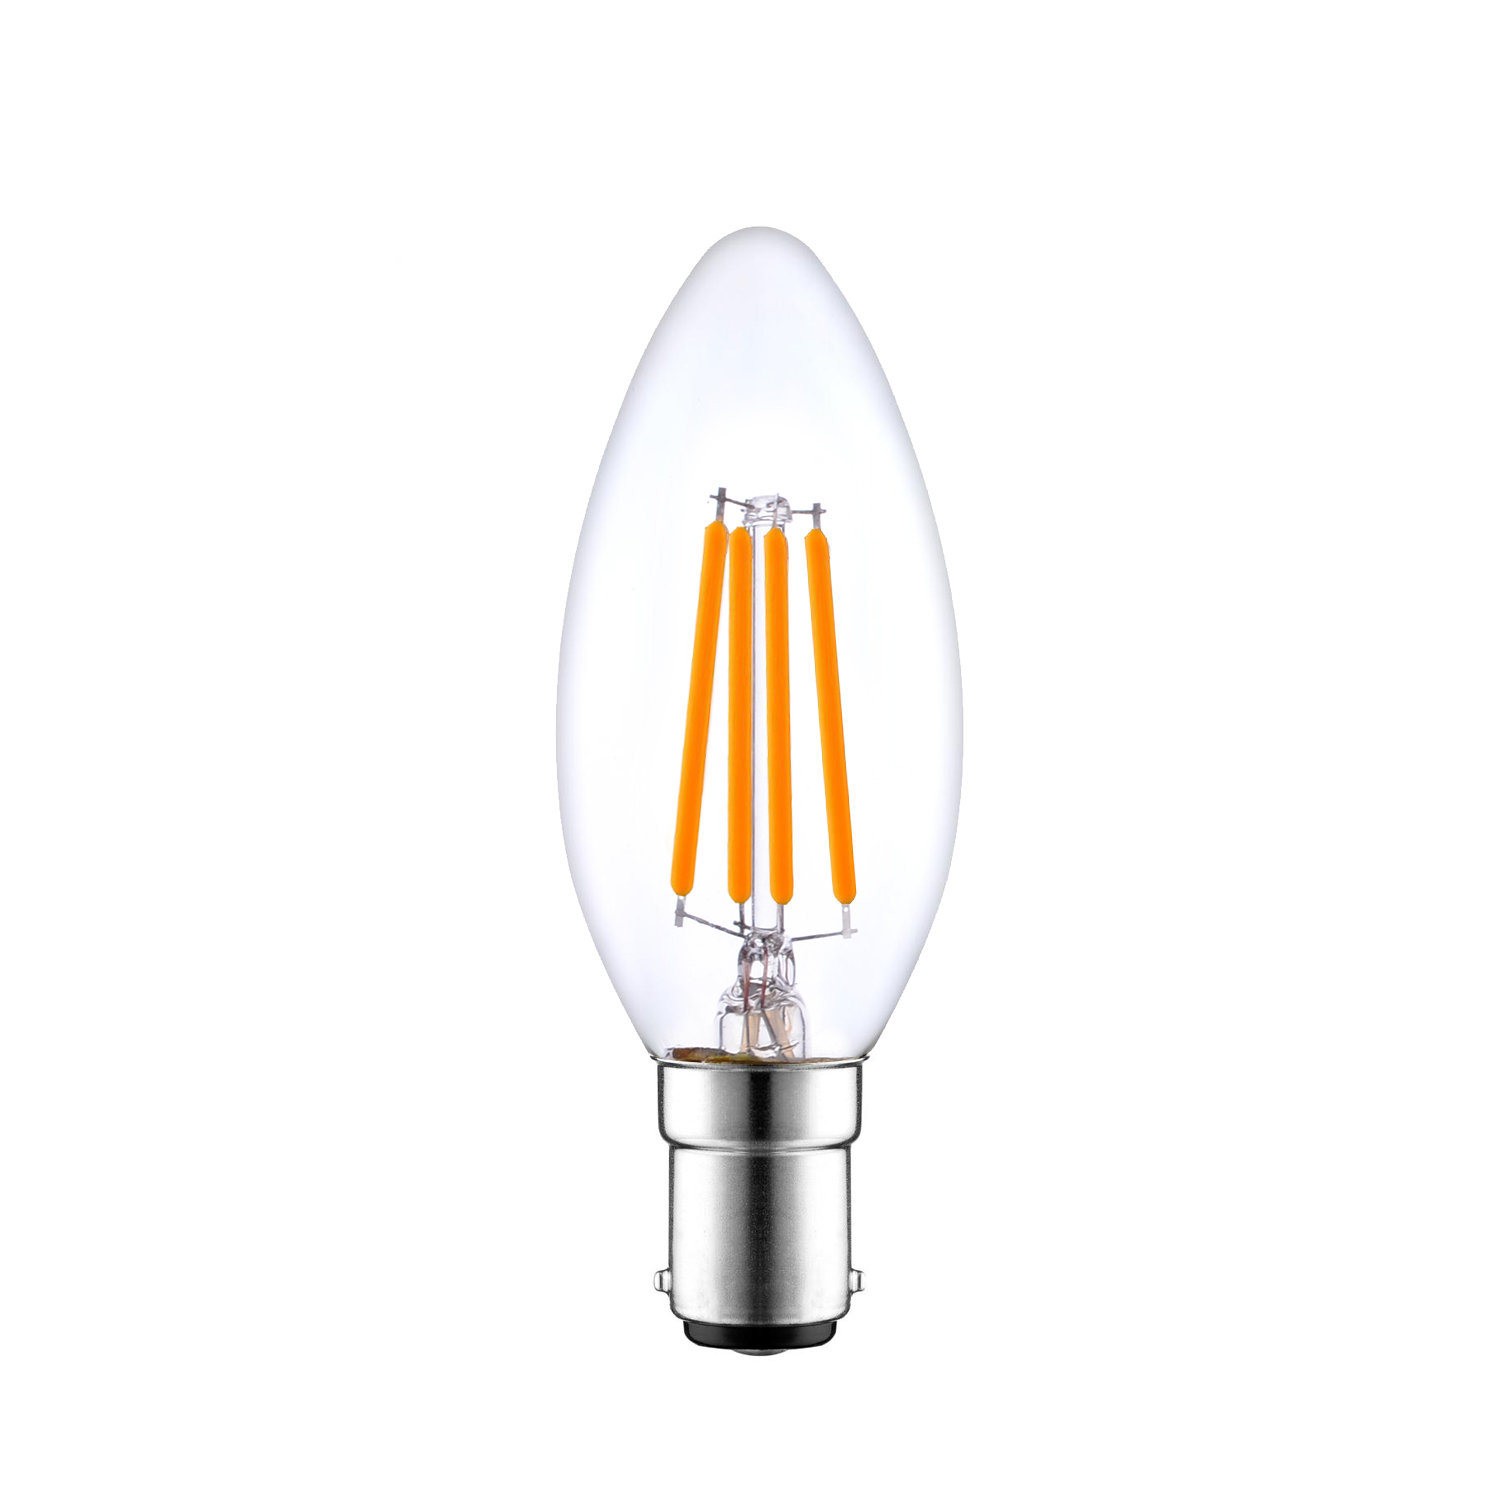 B15 Dimmable LED candle bulb Filament